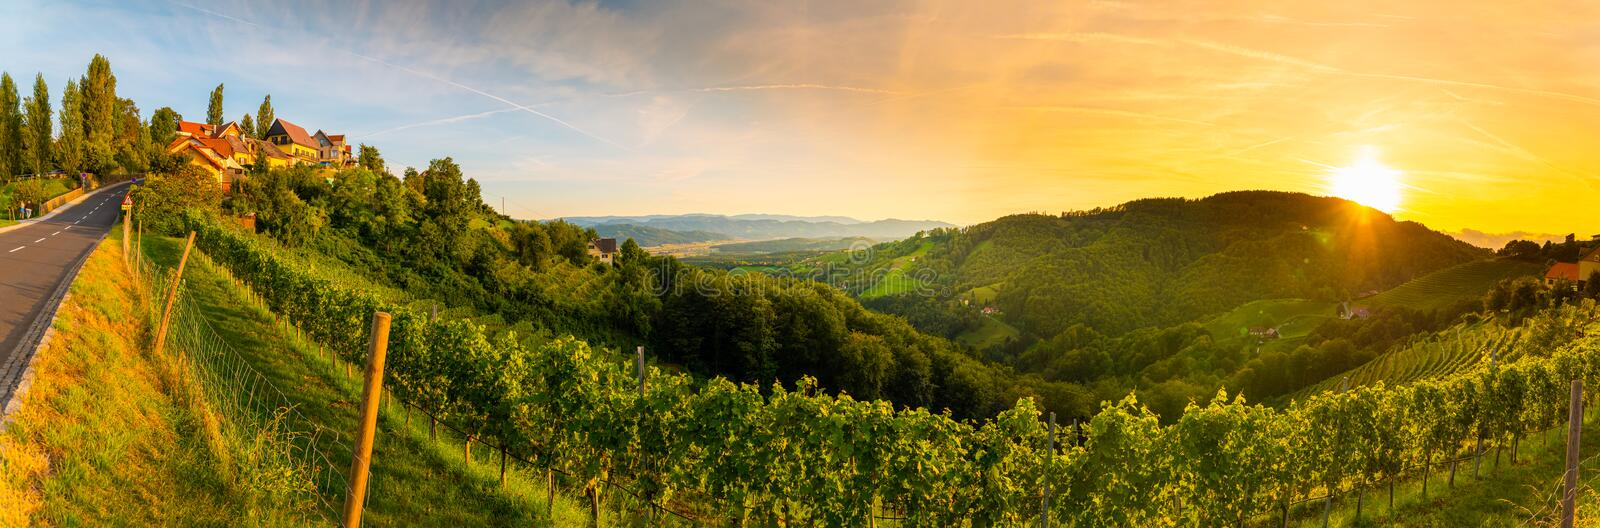 Landscape panorama of vineyard on an Austrian countryside with a church in the background in Kitzeck im Sausal. Tourist destination royalty free stock photos